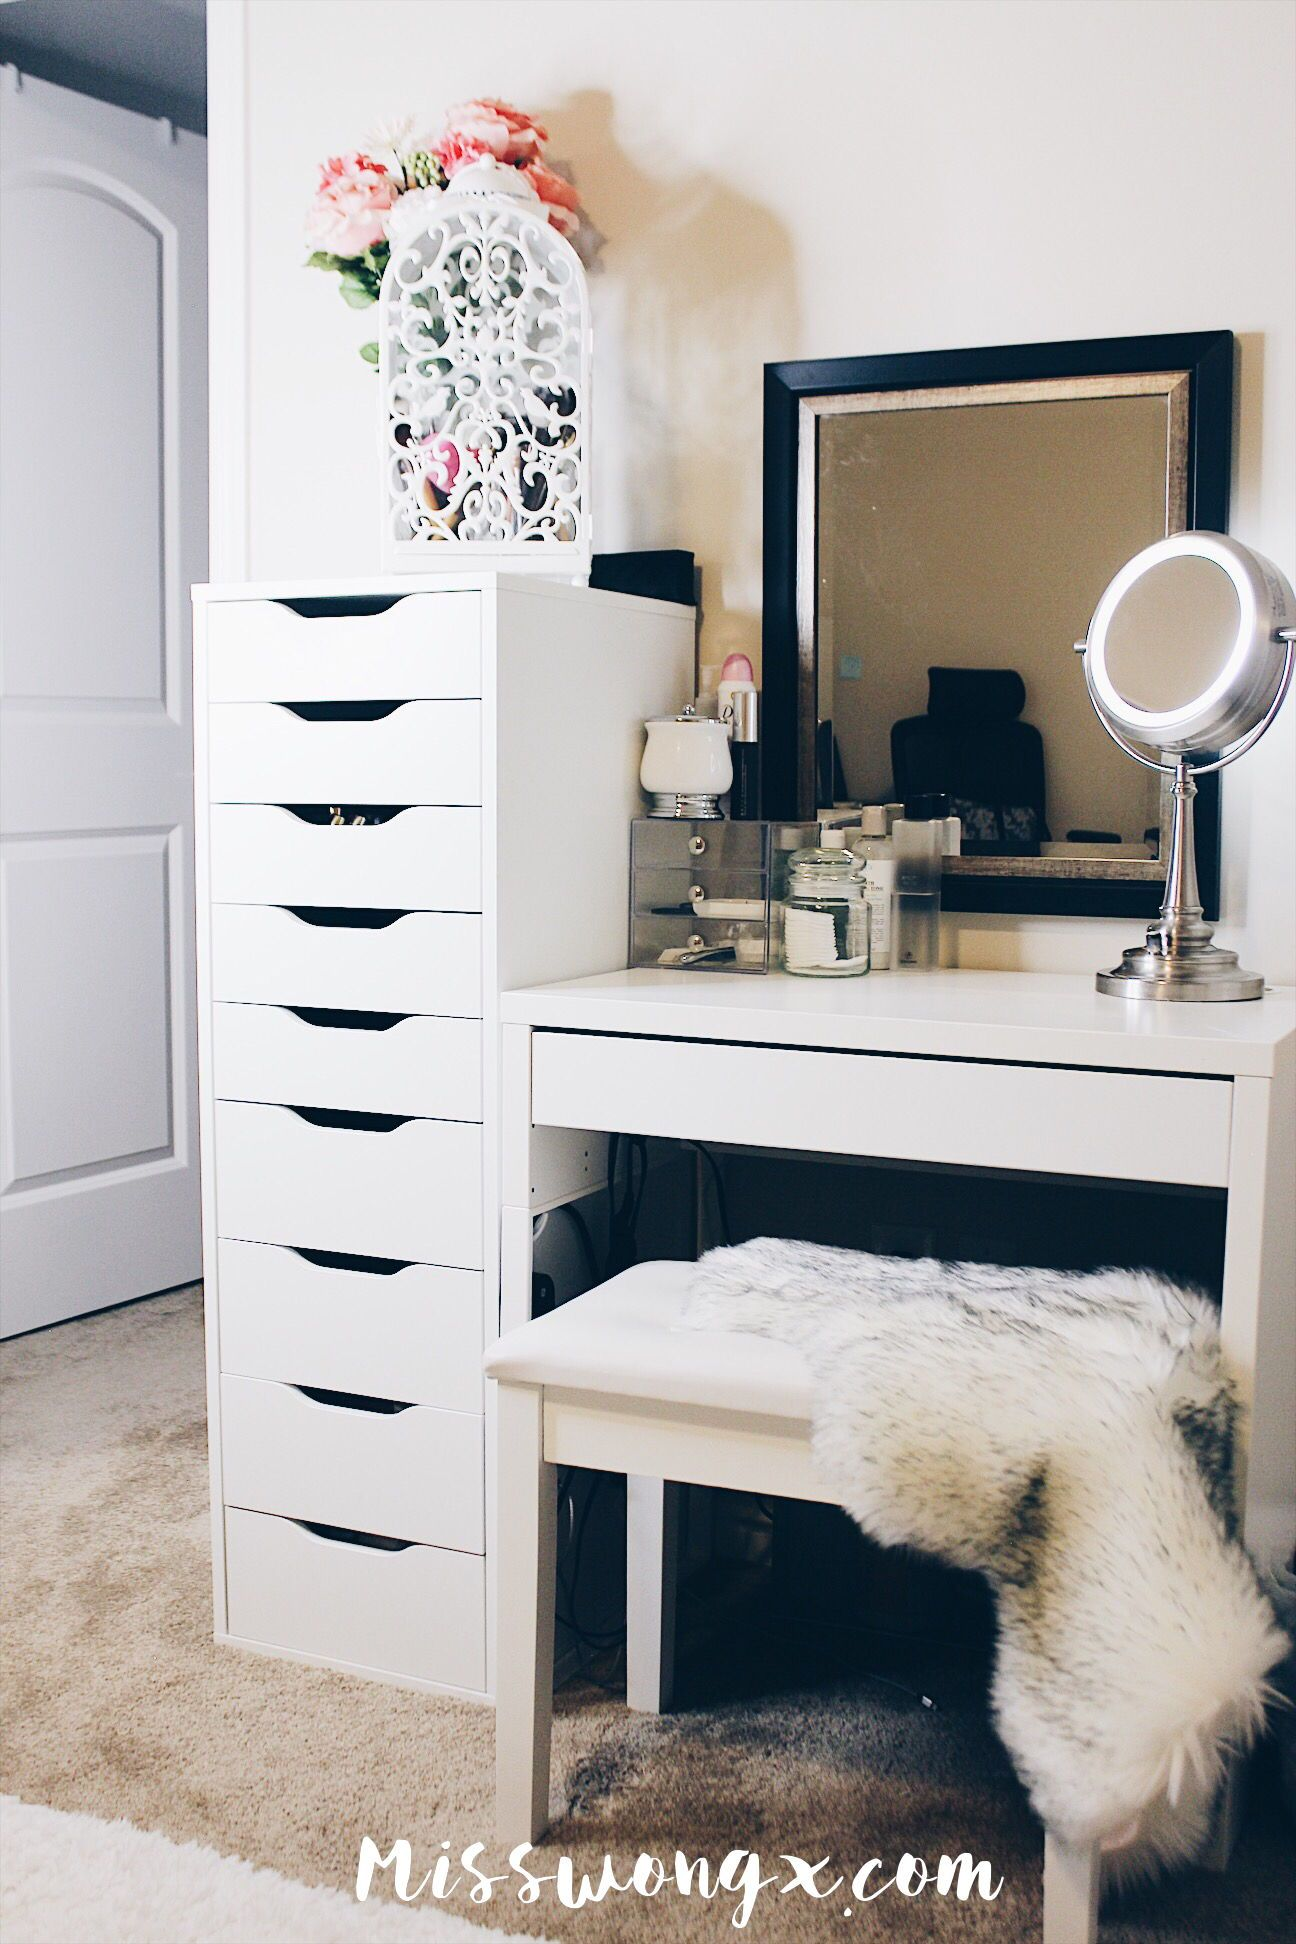 Tour Of My Vanity Small Bedroom Vanity Makeup Room Decor Room Ideas Bedroom